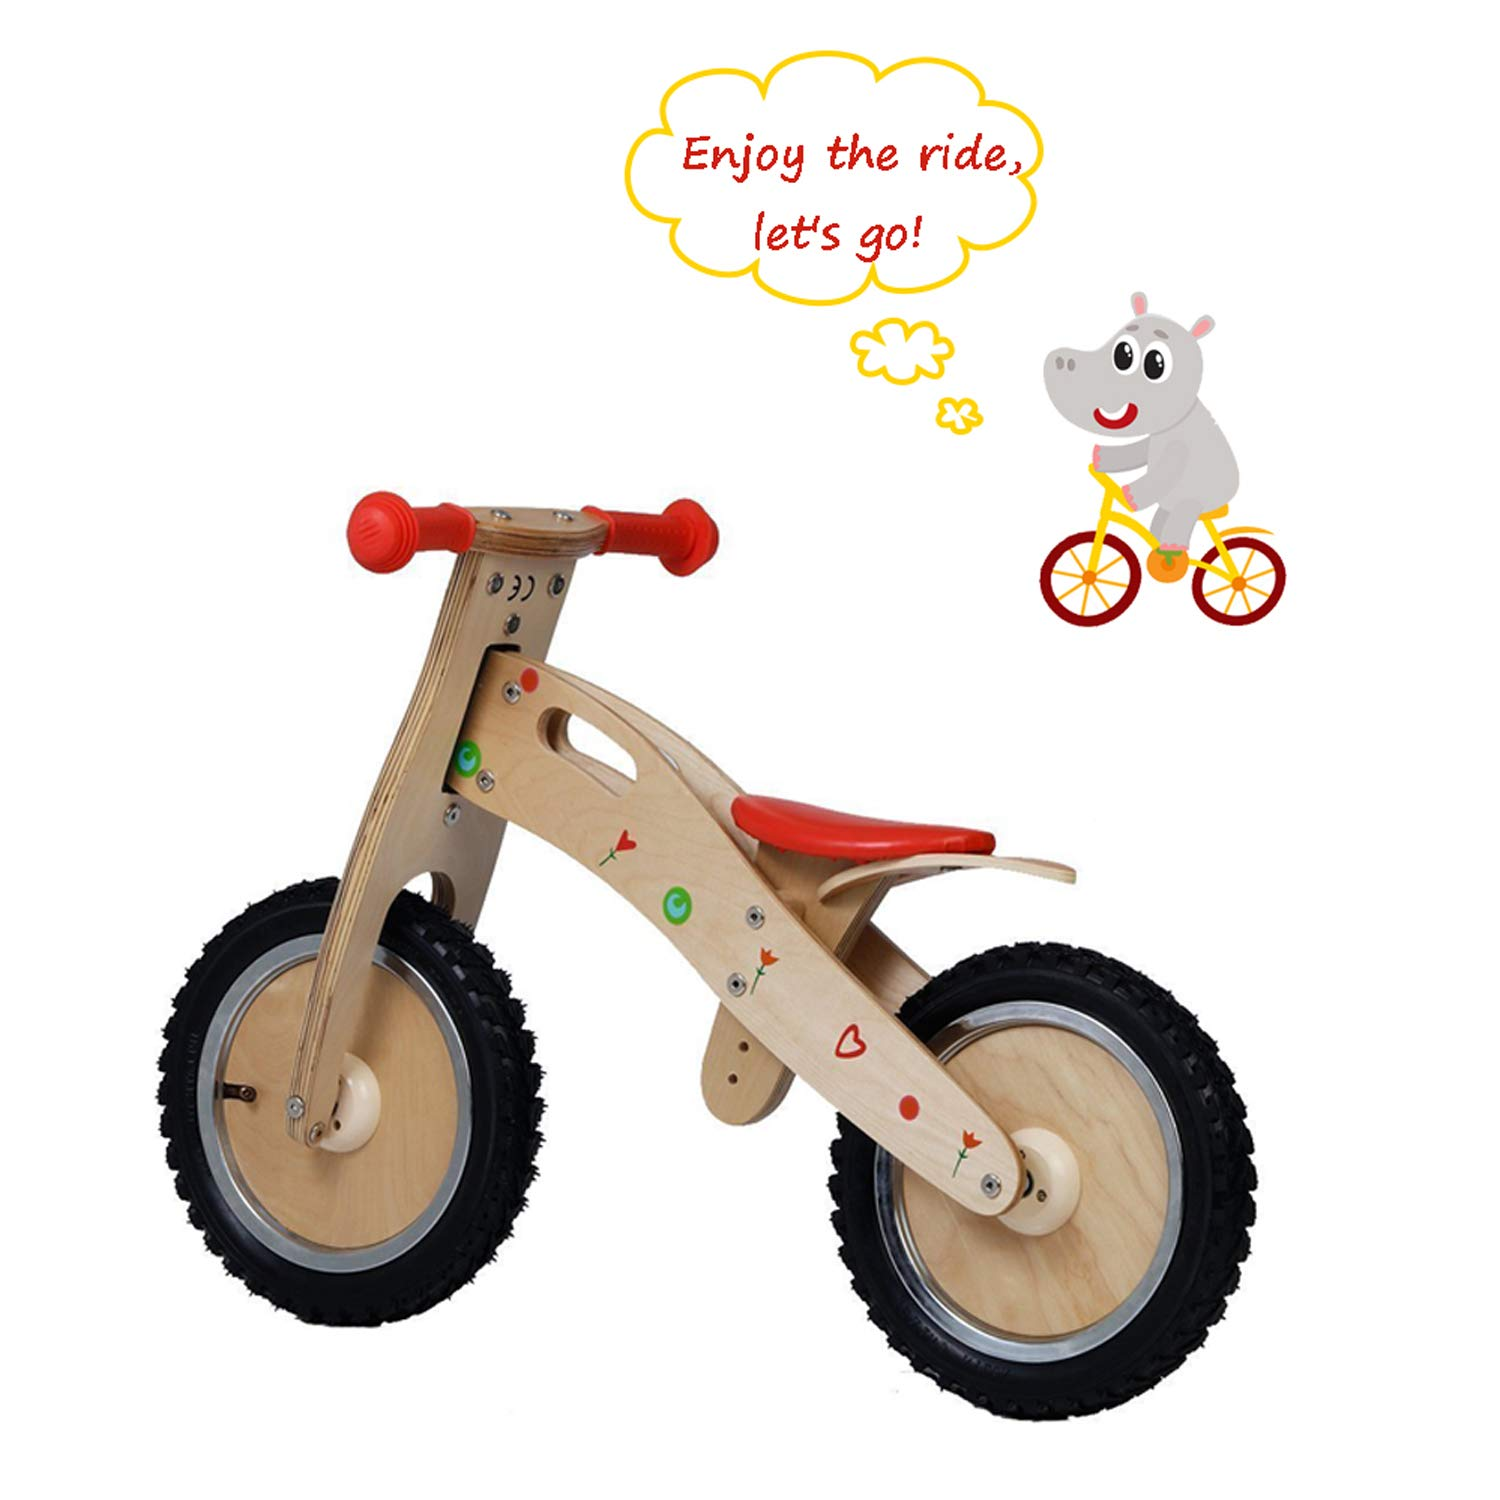 Labebe Balance Bike for Kids, Height Adjustable for 18 Month- 3 Year Old Babies, Wooden Balance Bike/Brown Balance Bike/Mini Balance Bike/Bike Balance Buddy/No Pedal Balance Bike